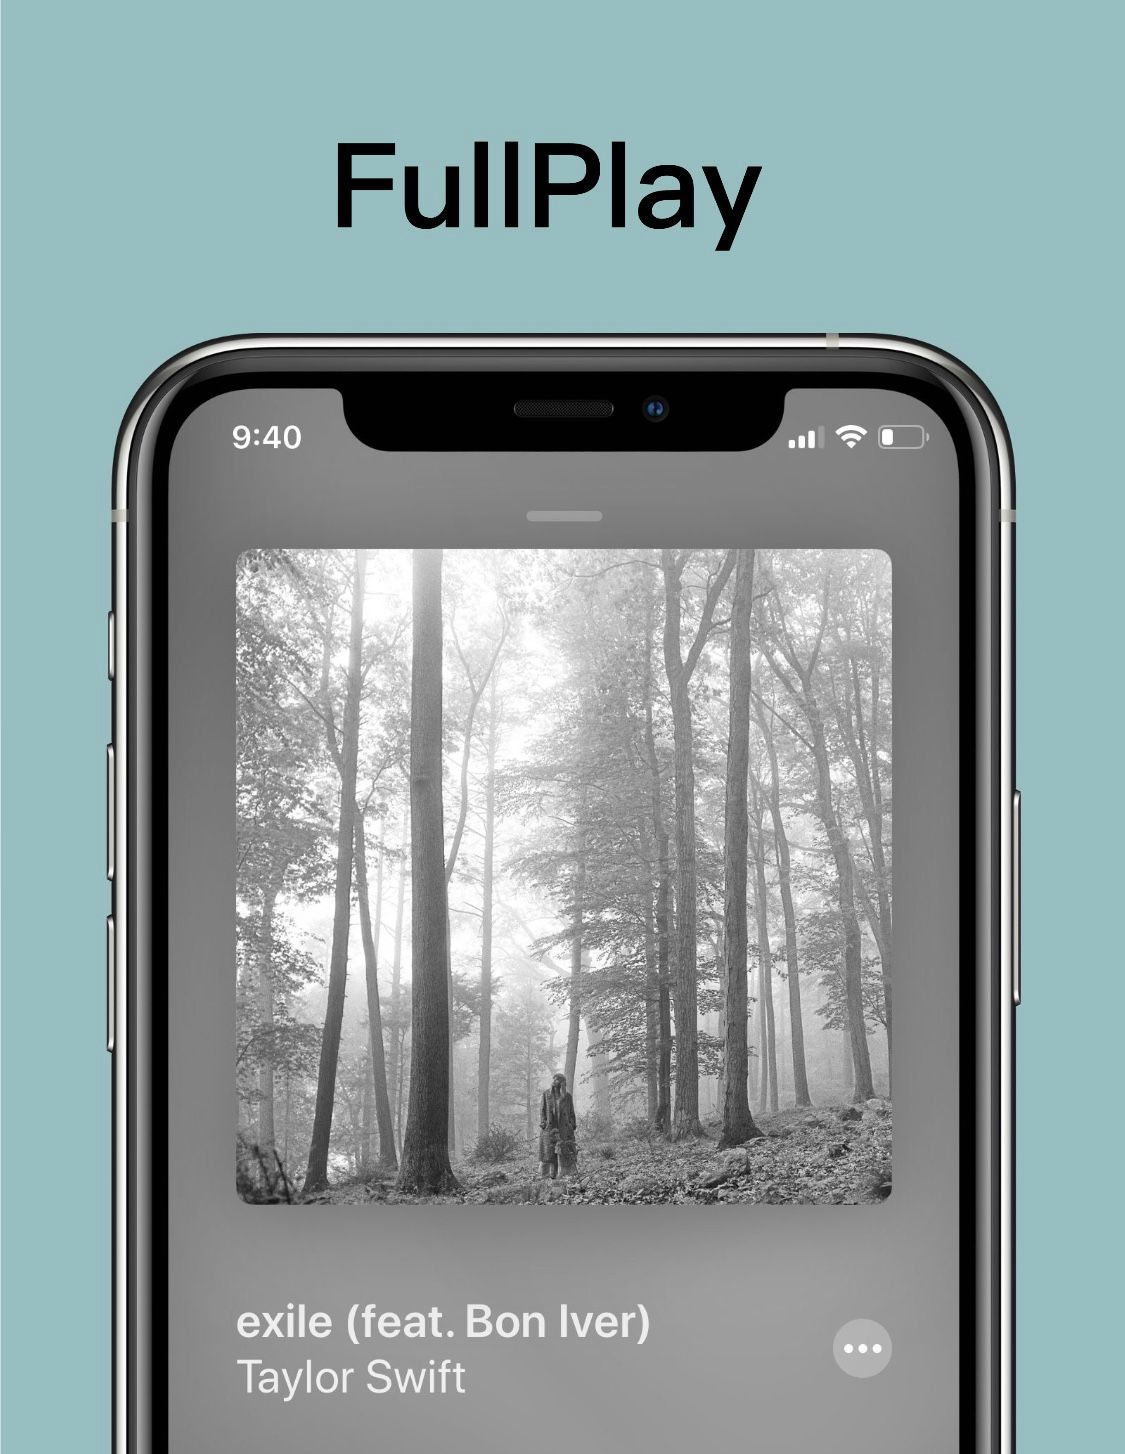 FullPlay gives jailbreakers an iOS 14-style full-screen Music app experience